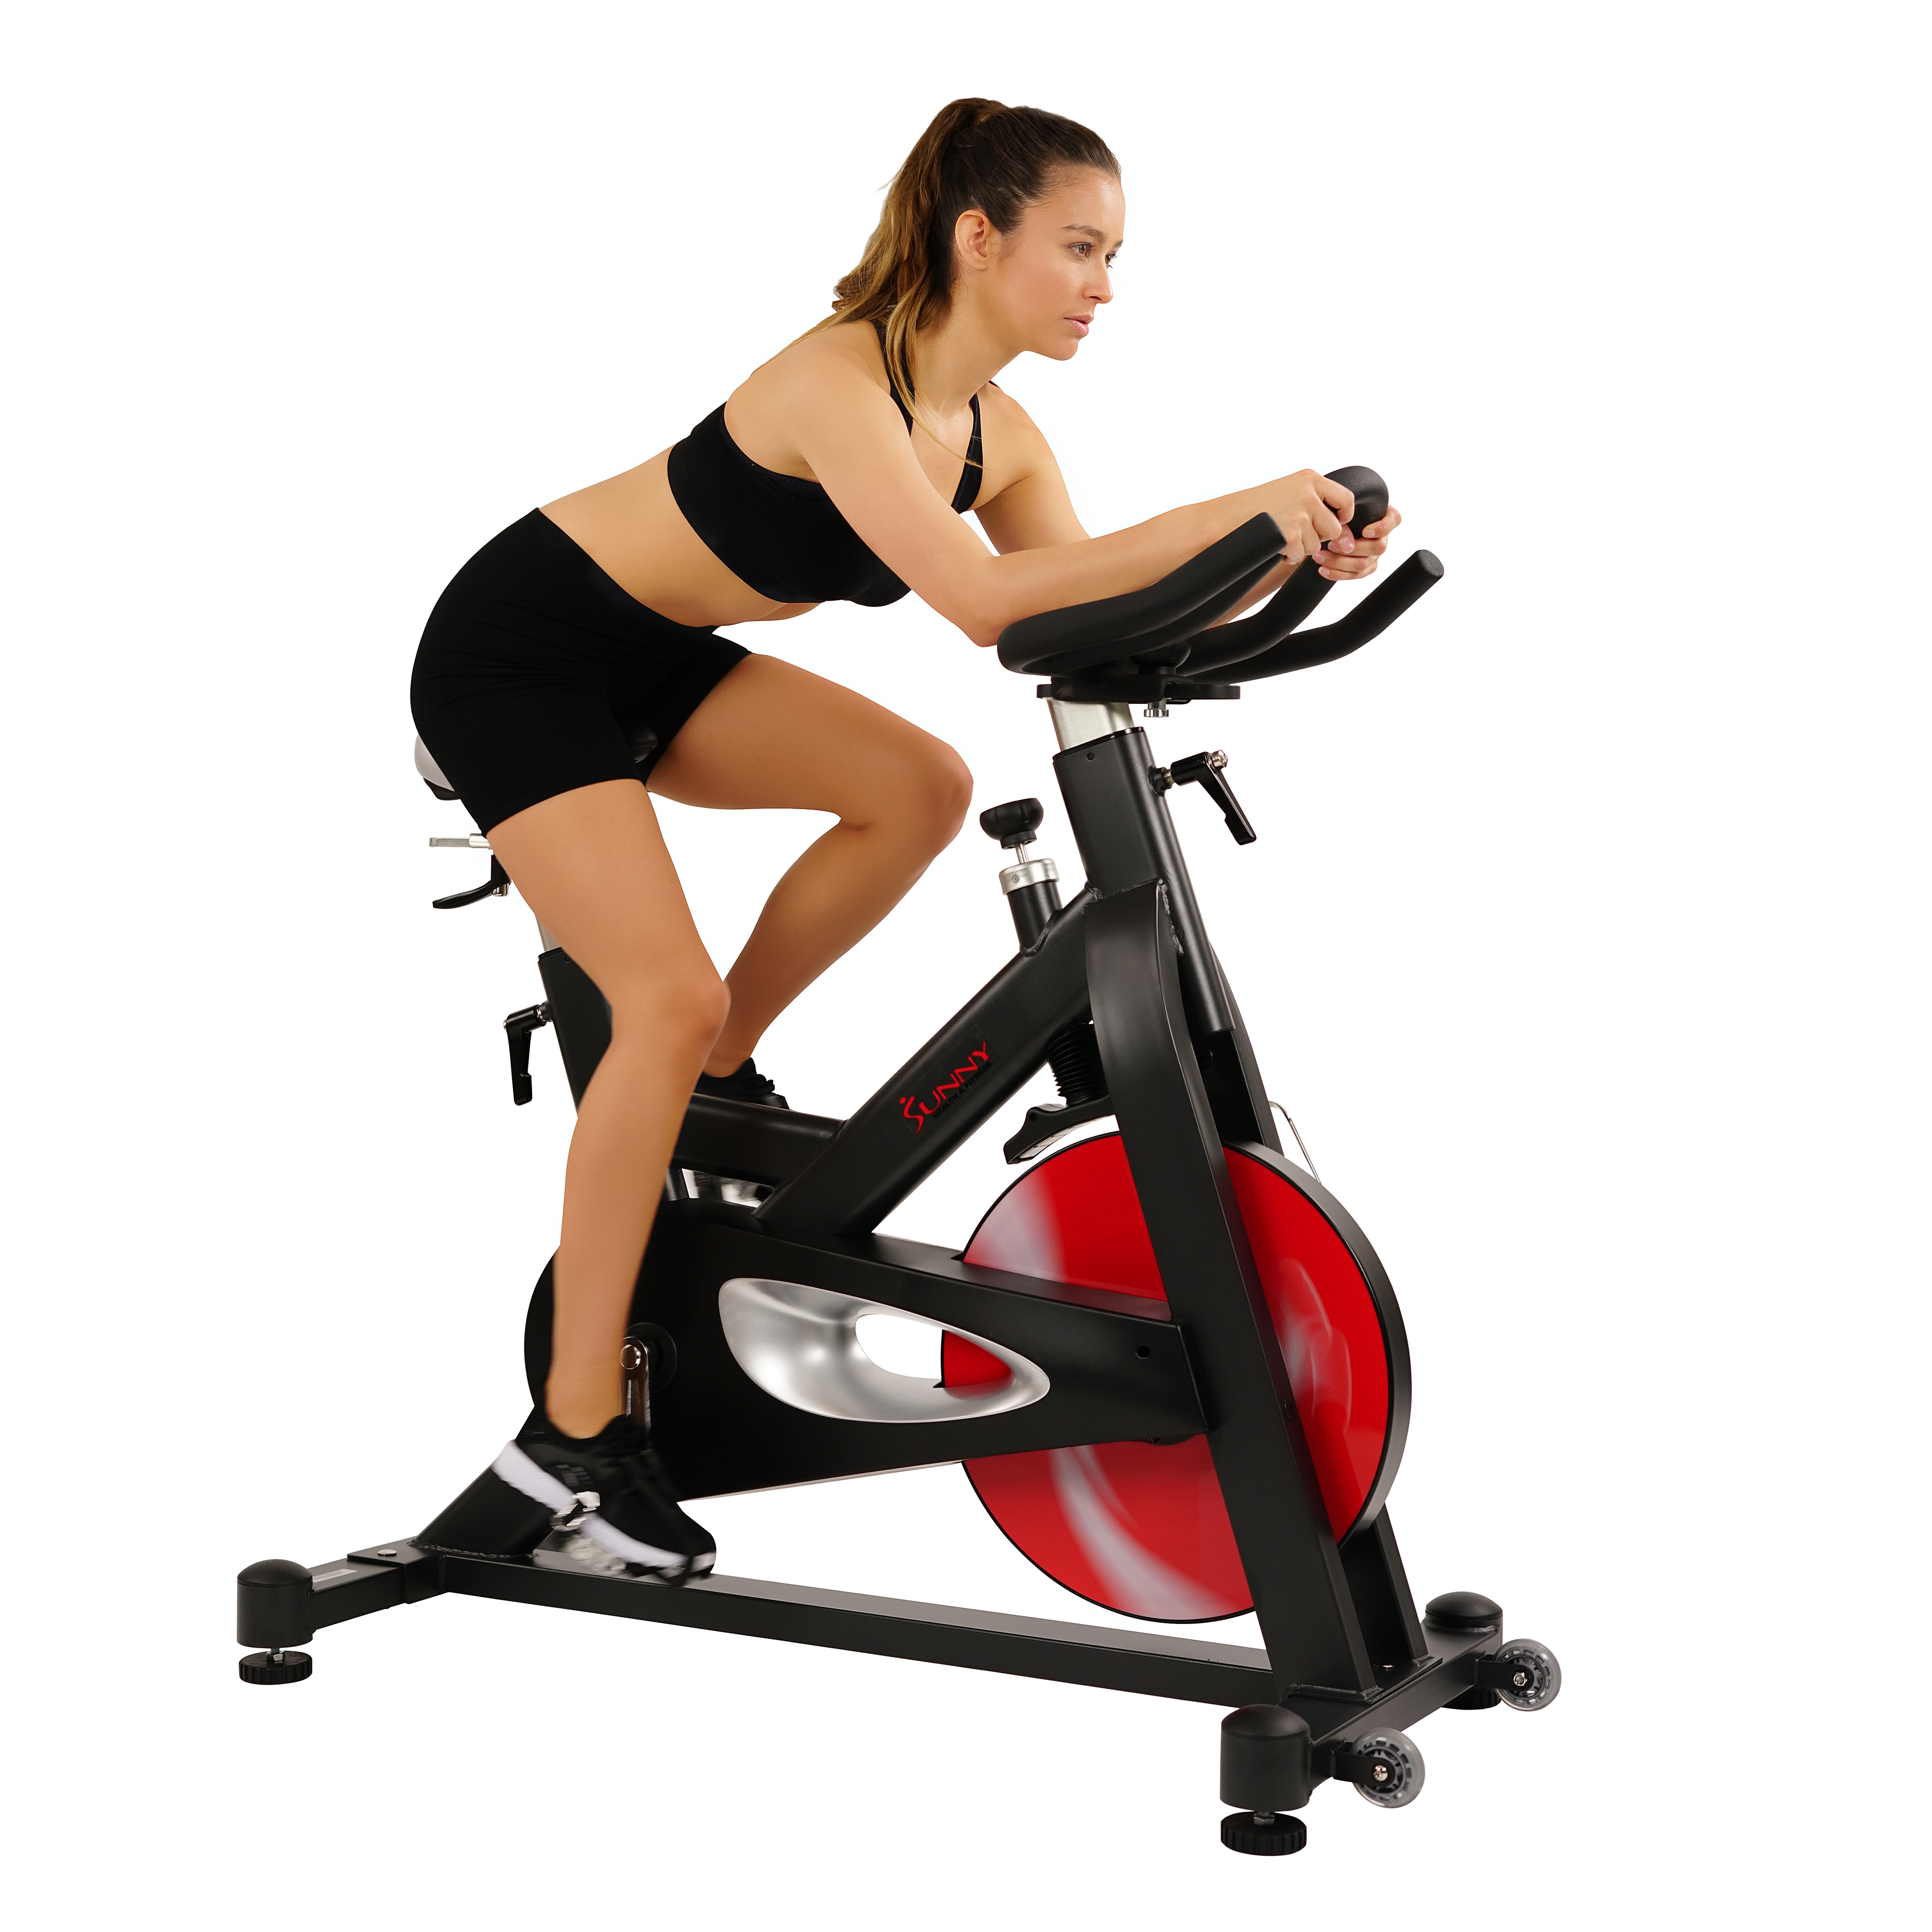 Sunny Health & Fitness Belt Drive Indoor Cycling Bike SF-B1714 with 44 lb. Flywheel